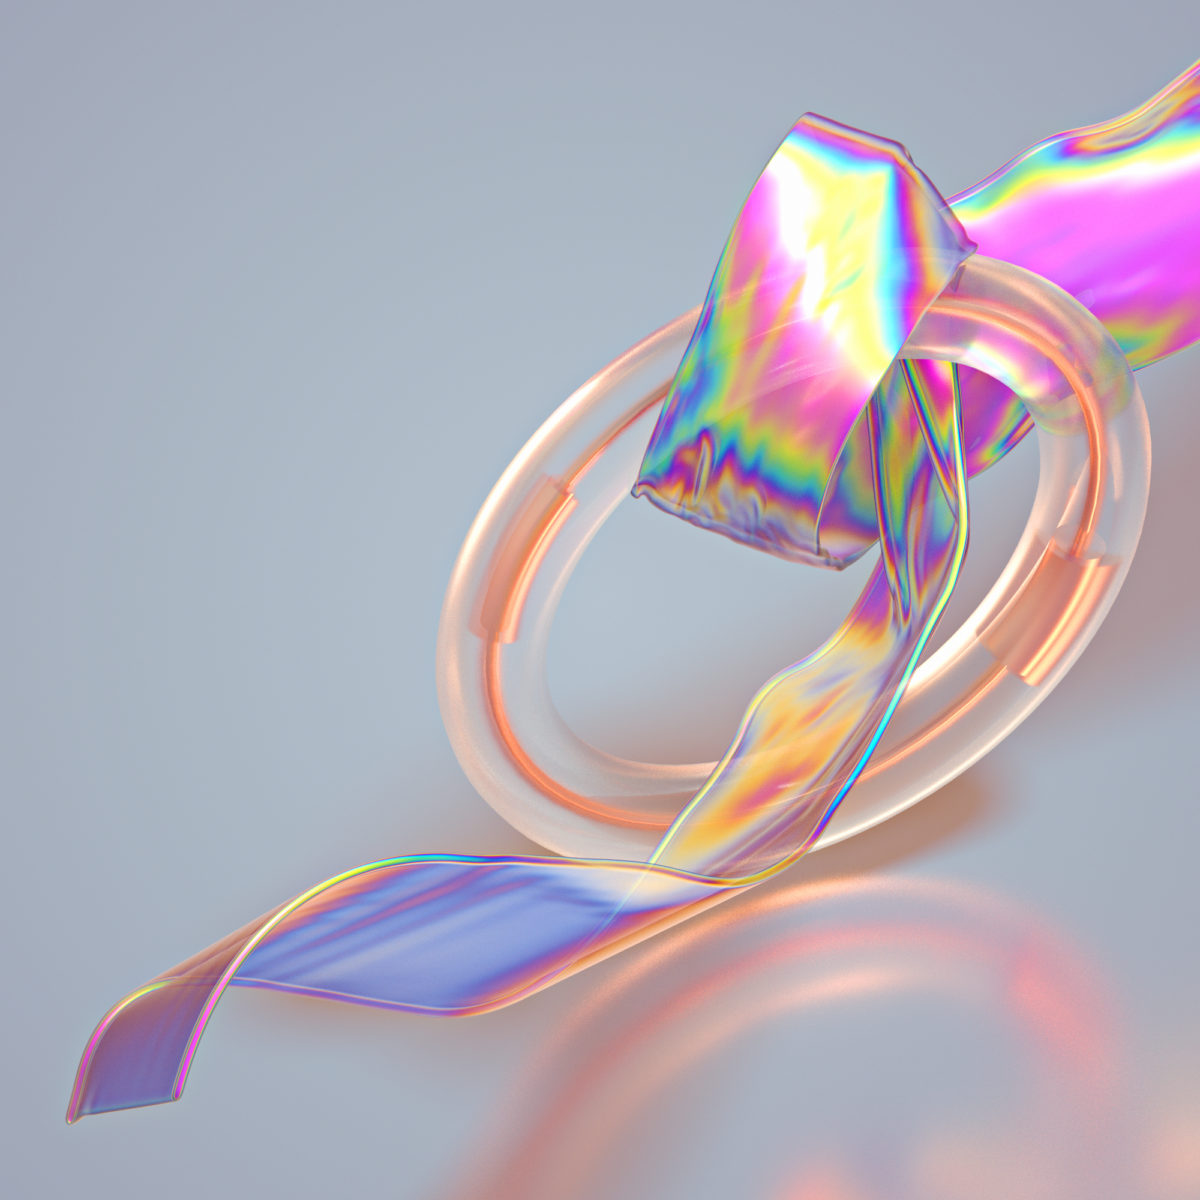 Translucent Iridescent - A digital art and motion graphic series by Machineast digital artist duo in Singapore.